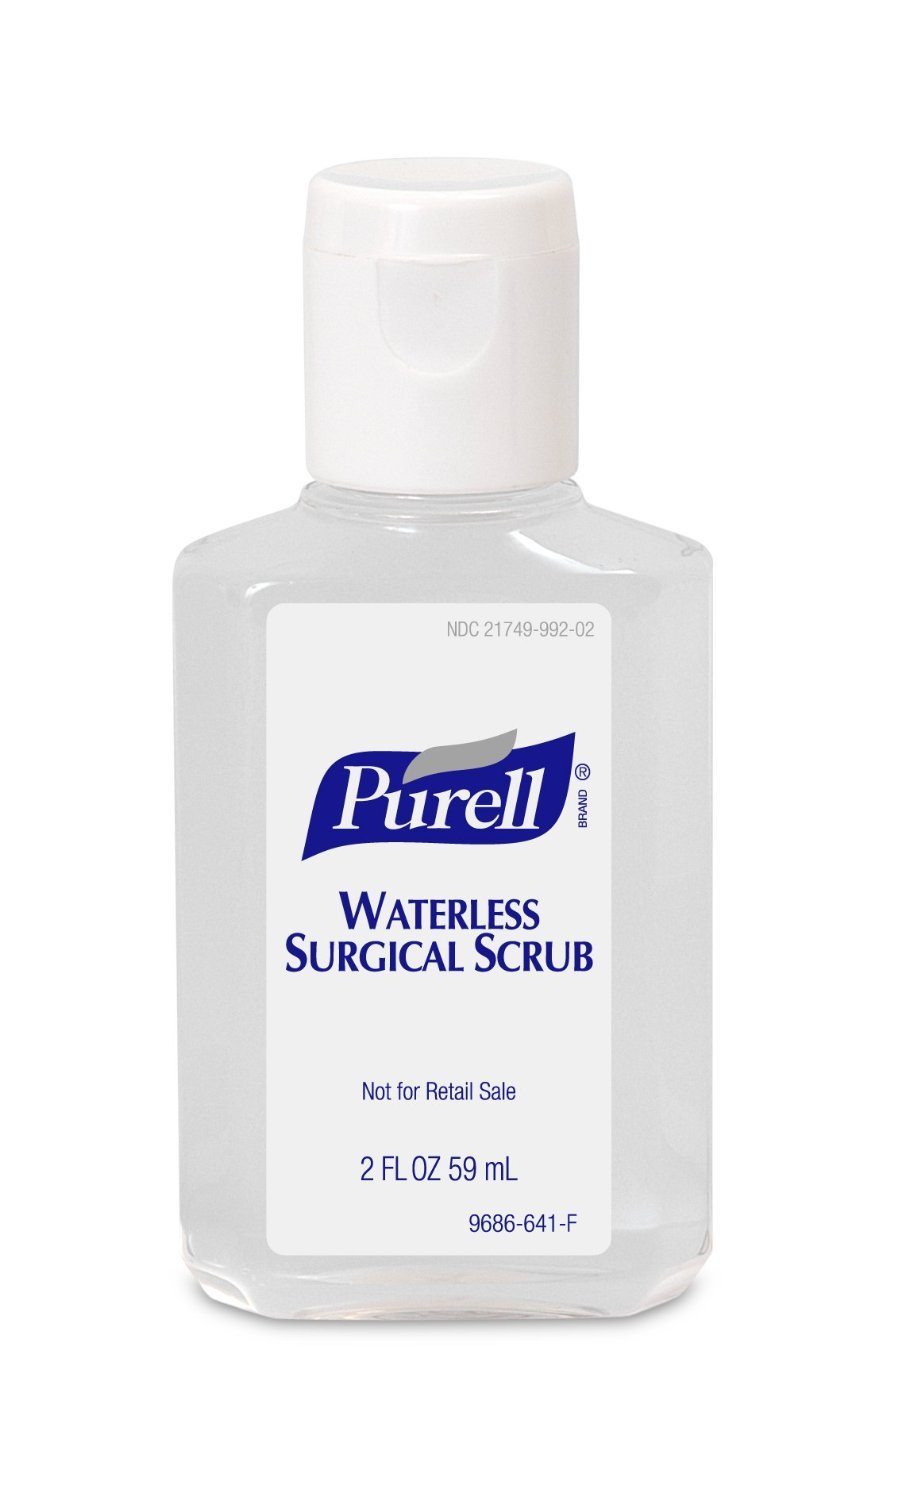 Purell Waterless Surgical With Moisturizers Scrub (24 Per Case)